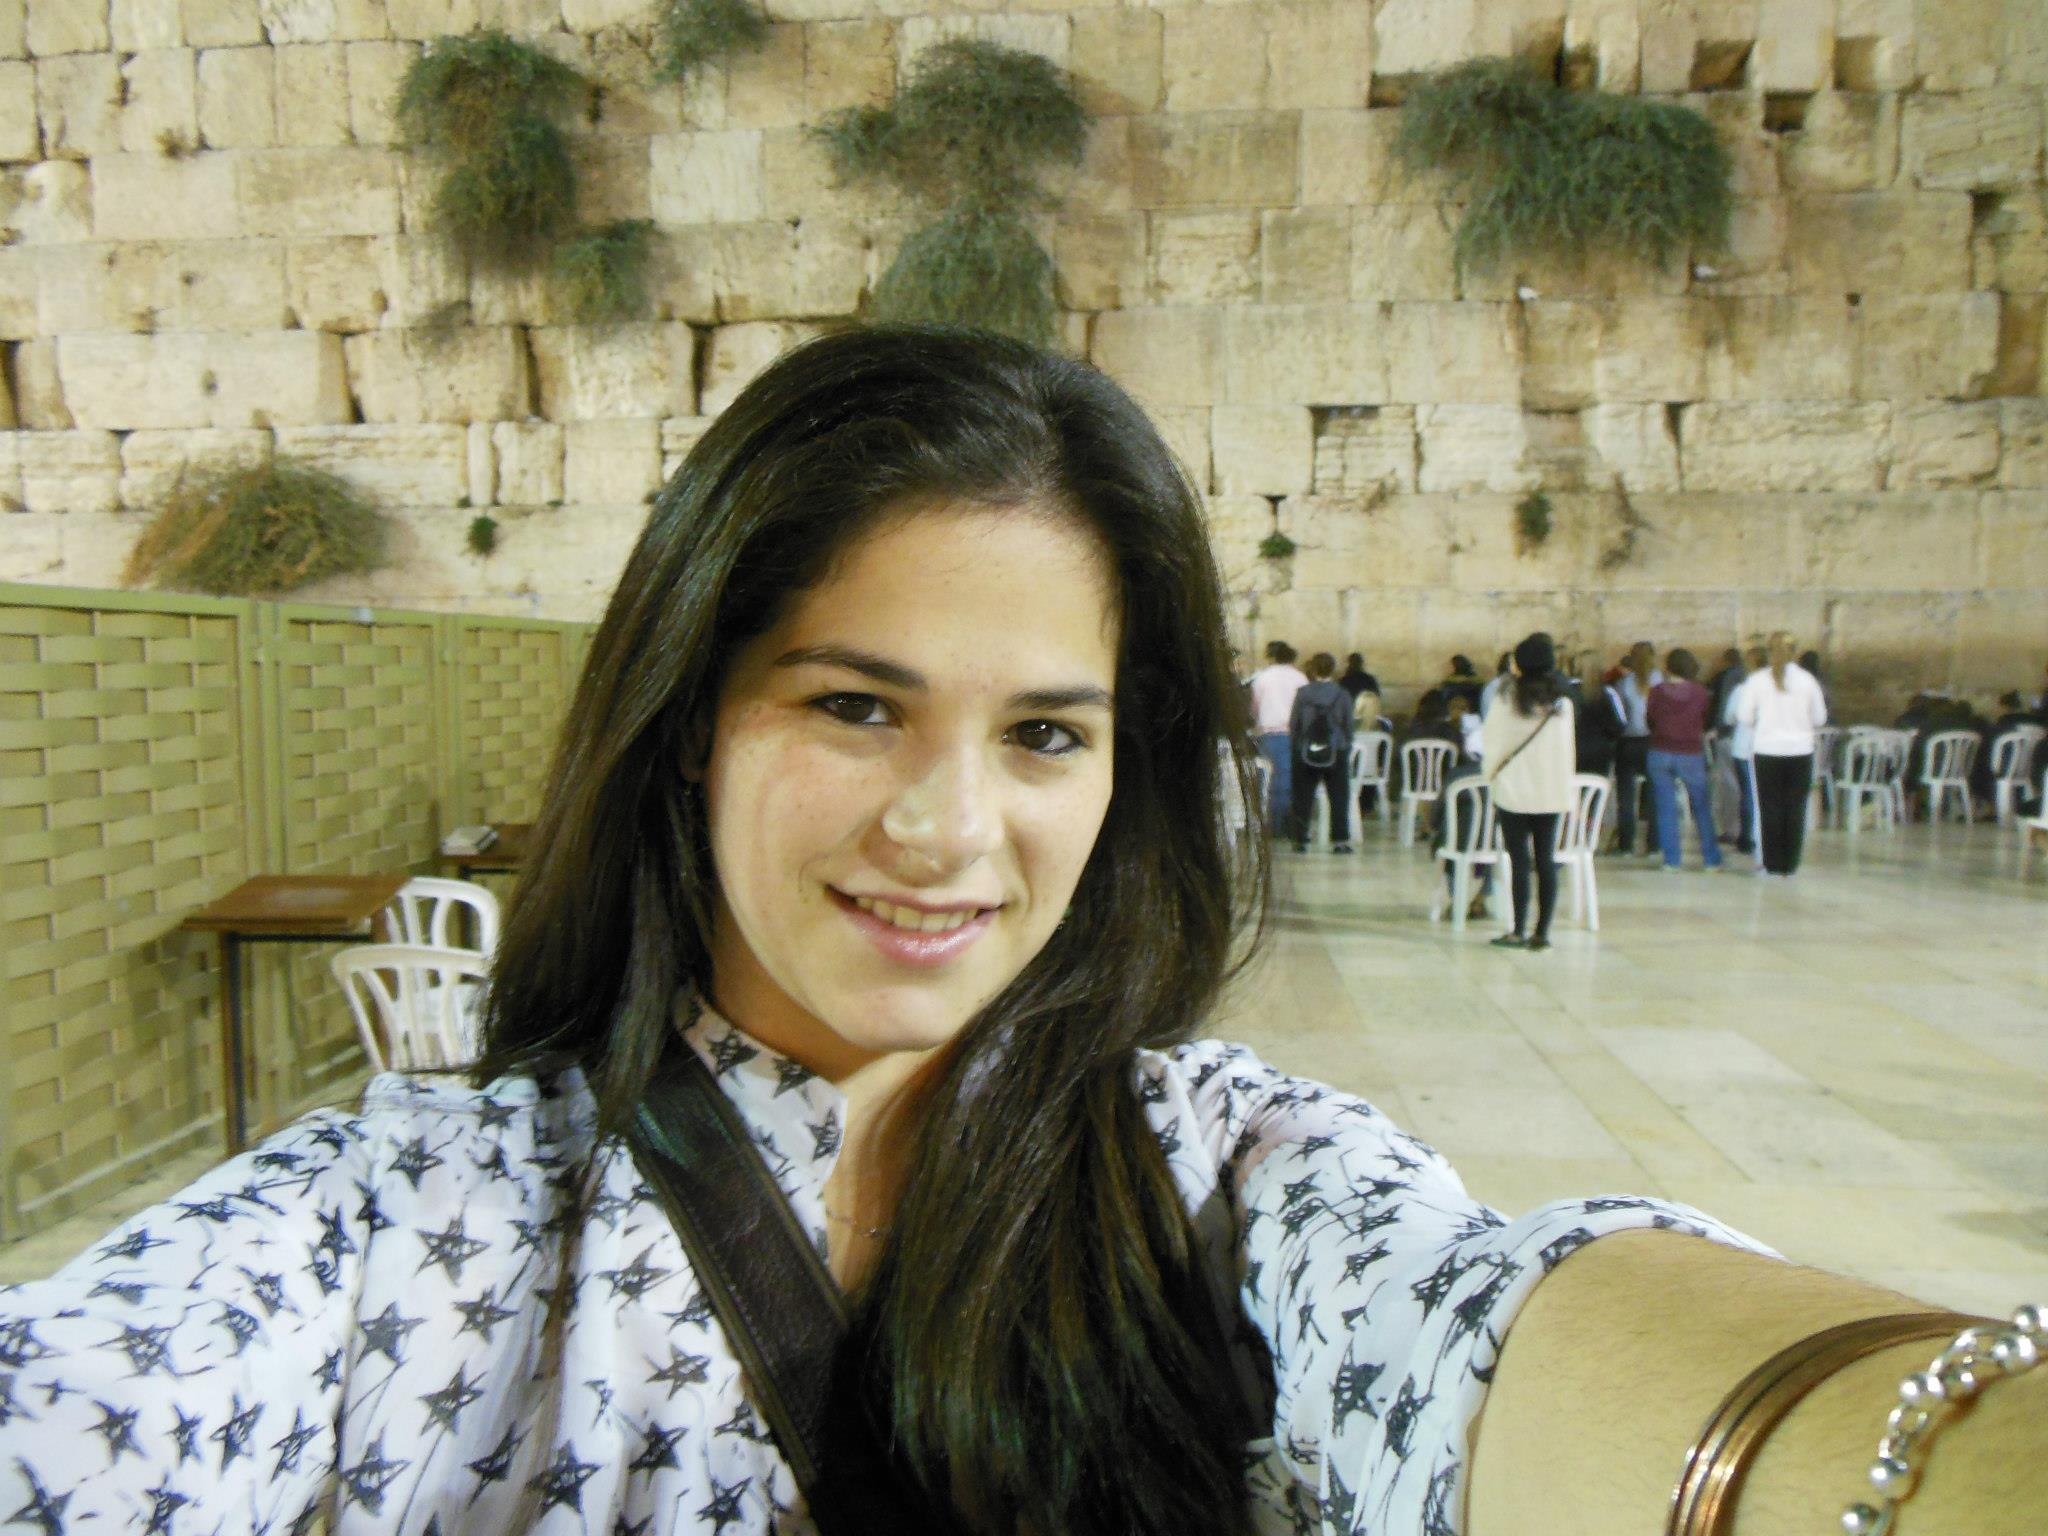 NORMAL: Ariella Joffe '12, here at the Kotel in Jerusalem, said girls at Midreshet Lindenbaum were discouraged from going out during the Gaza war in November, but that their parents back home seemed more worried than they were.